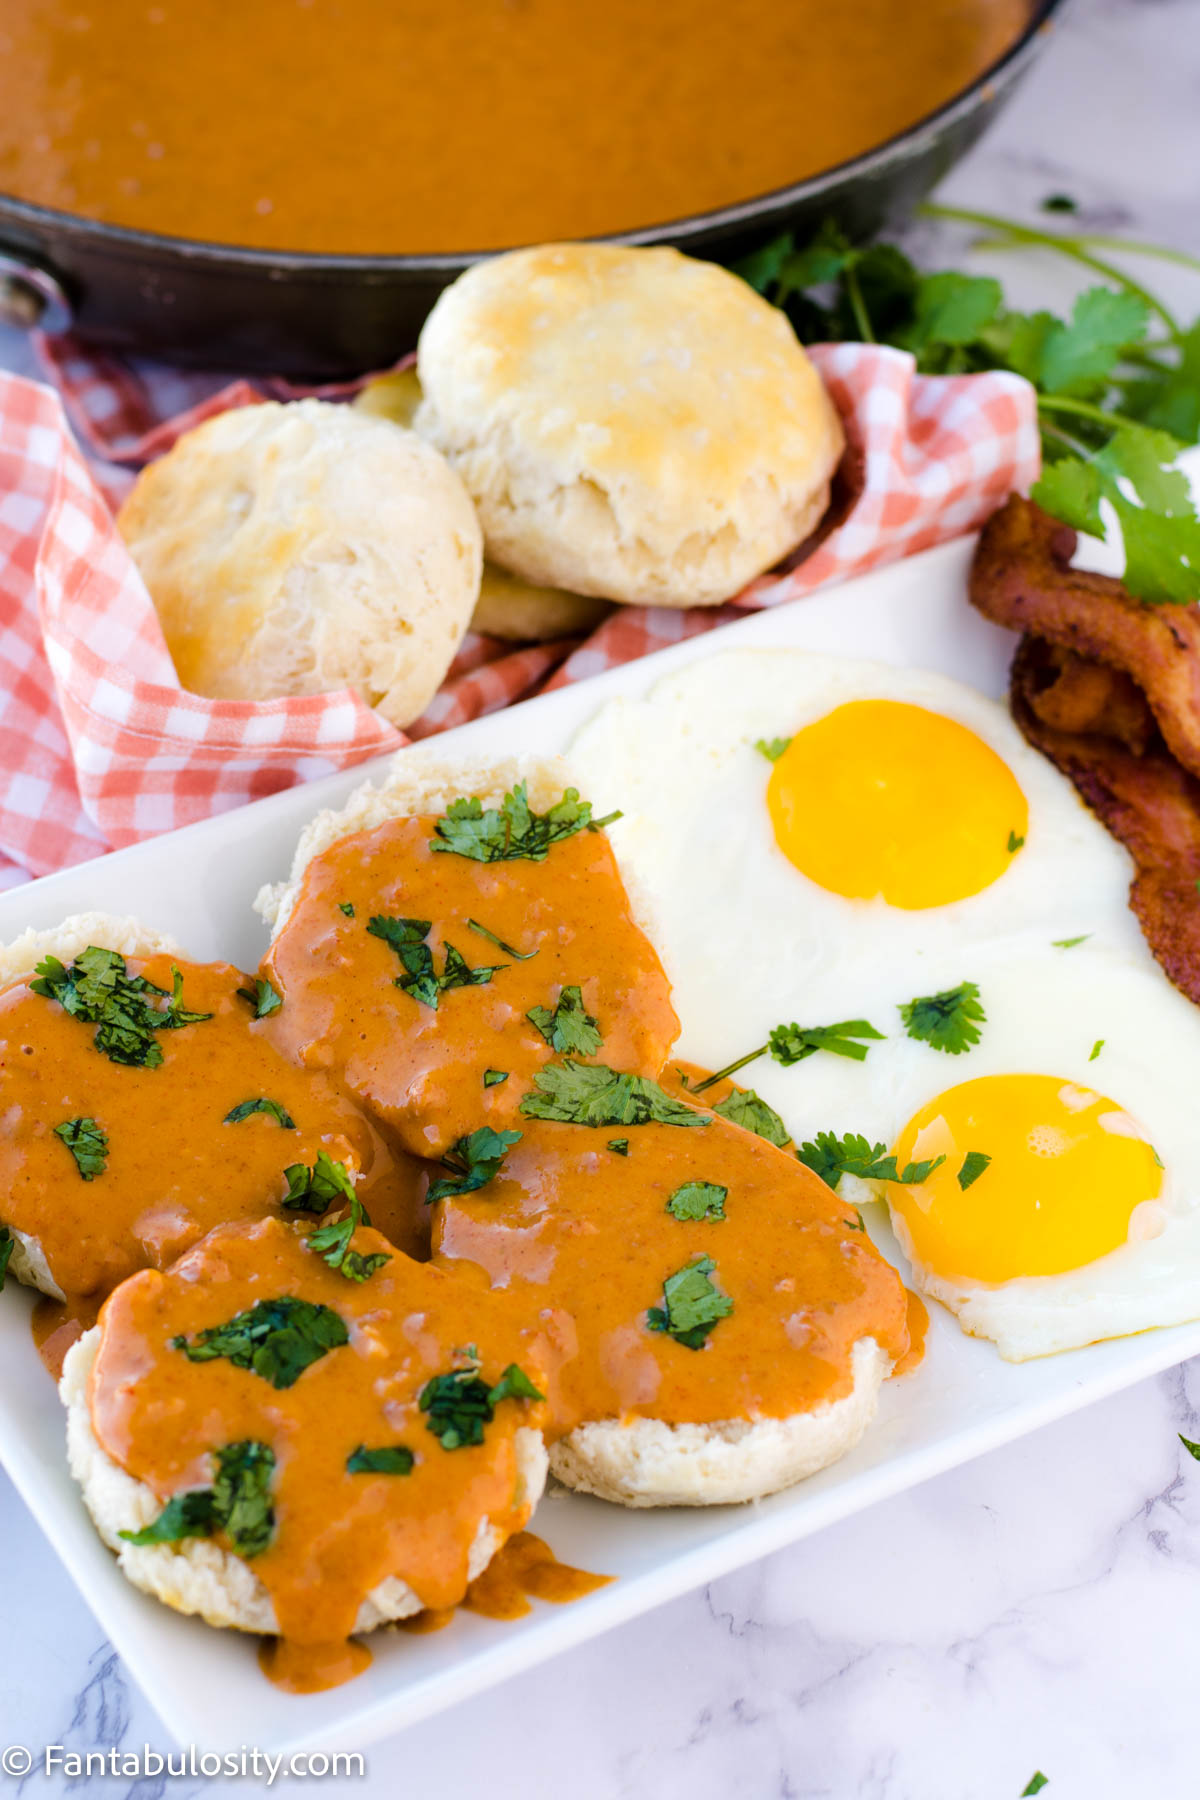 Chorizo gravy on top of biscuits, on a plate with sunny side up eggs, bacon